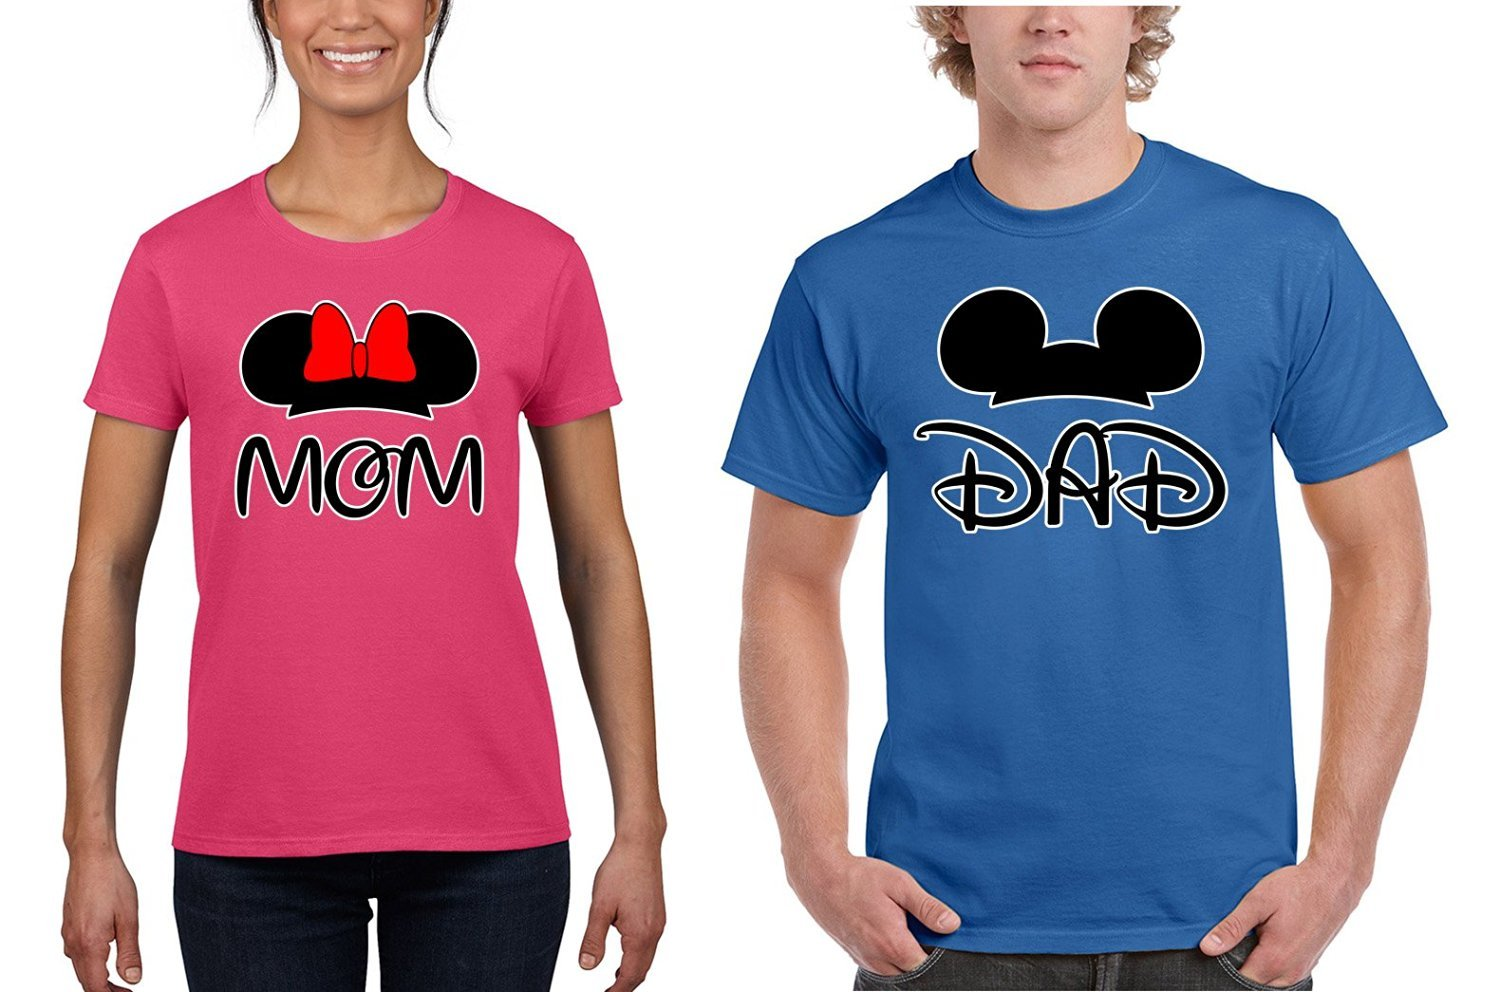 Amazon.com: Good Shoppers Minnie Mom and Mickey Dad Romantic Men & Women T-Shirts for Couple: Clothing